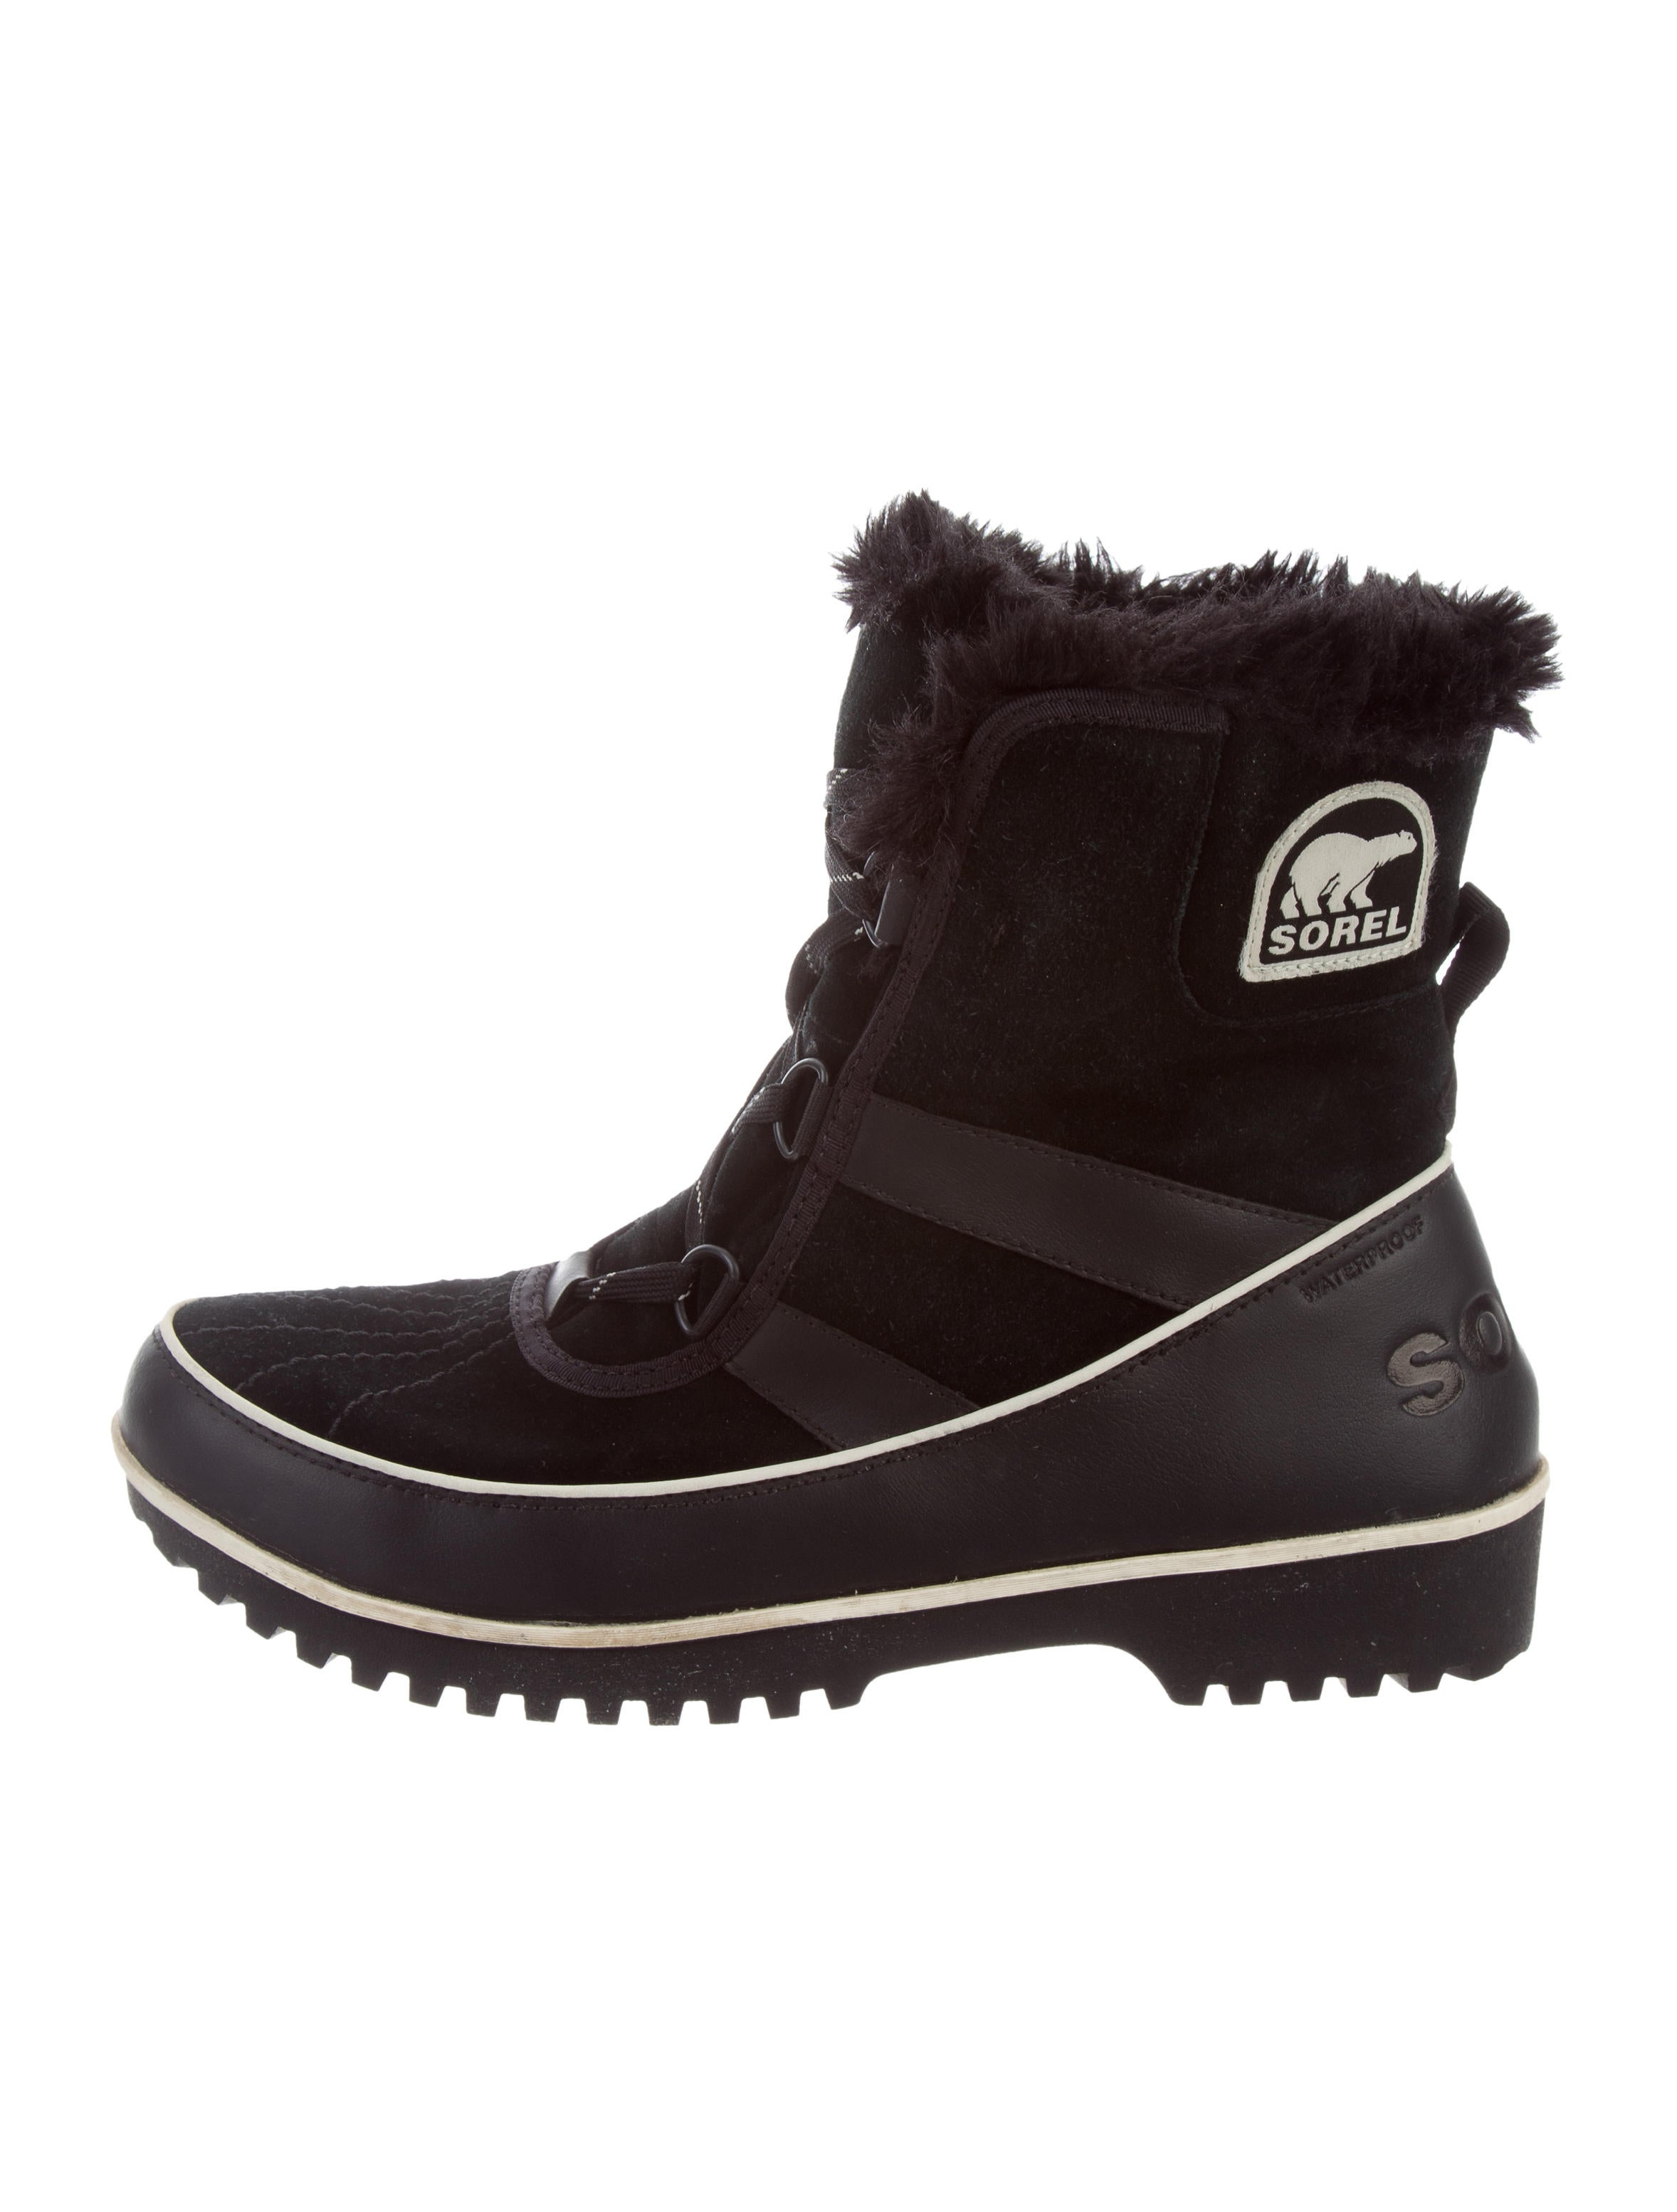 good selling for sale Sorel 2018 Tivoli II Ankle Boots explore sale online Owy8Qts